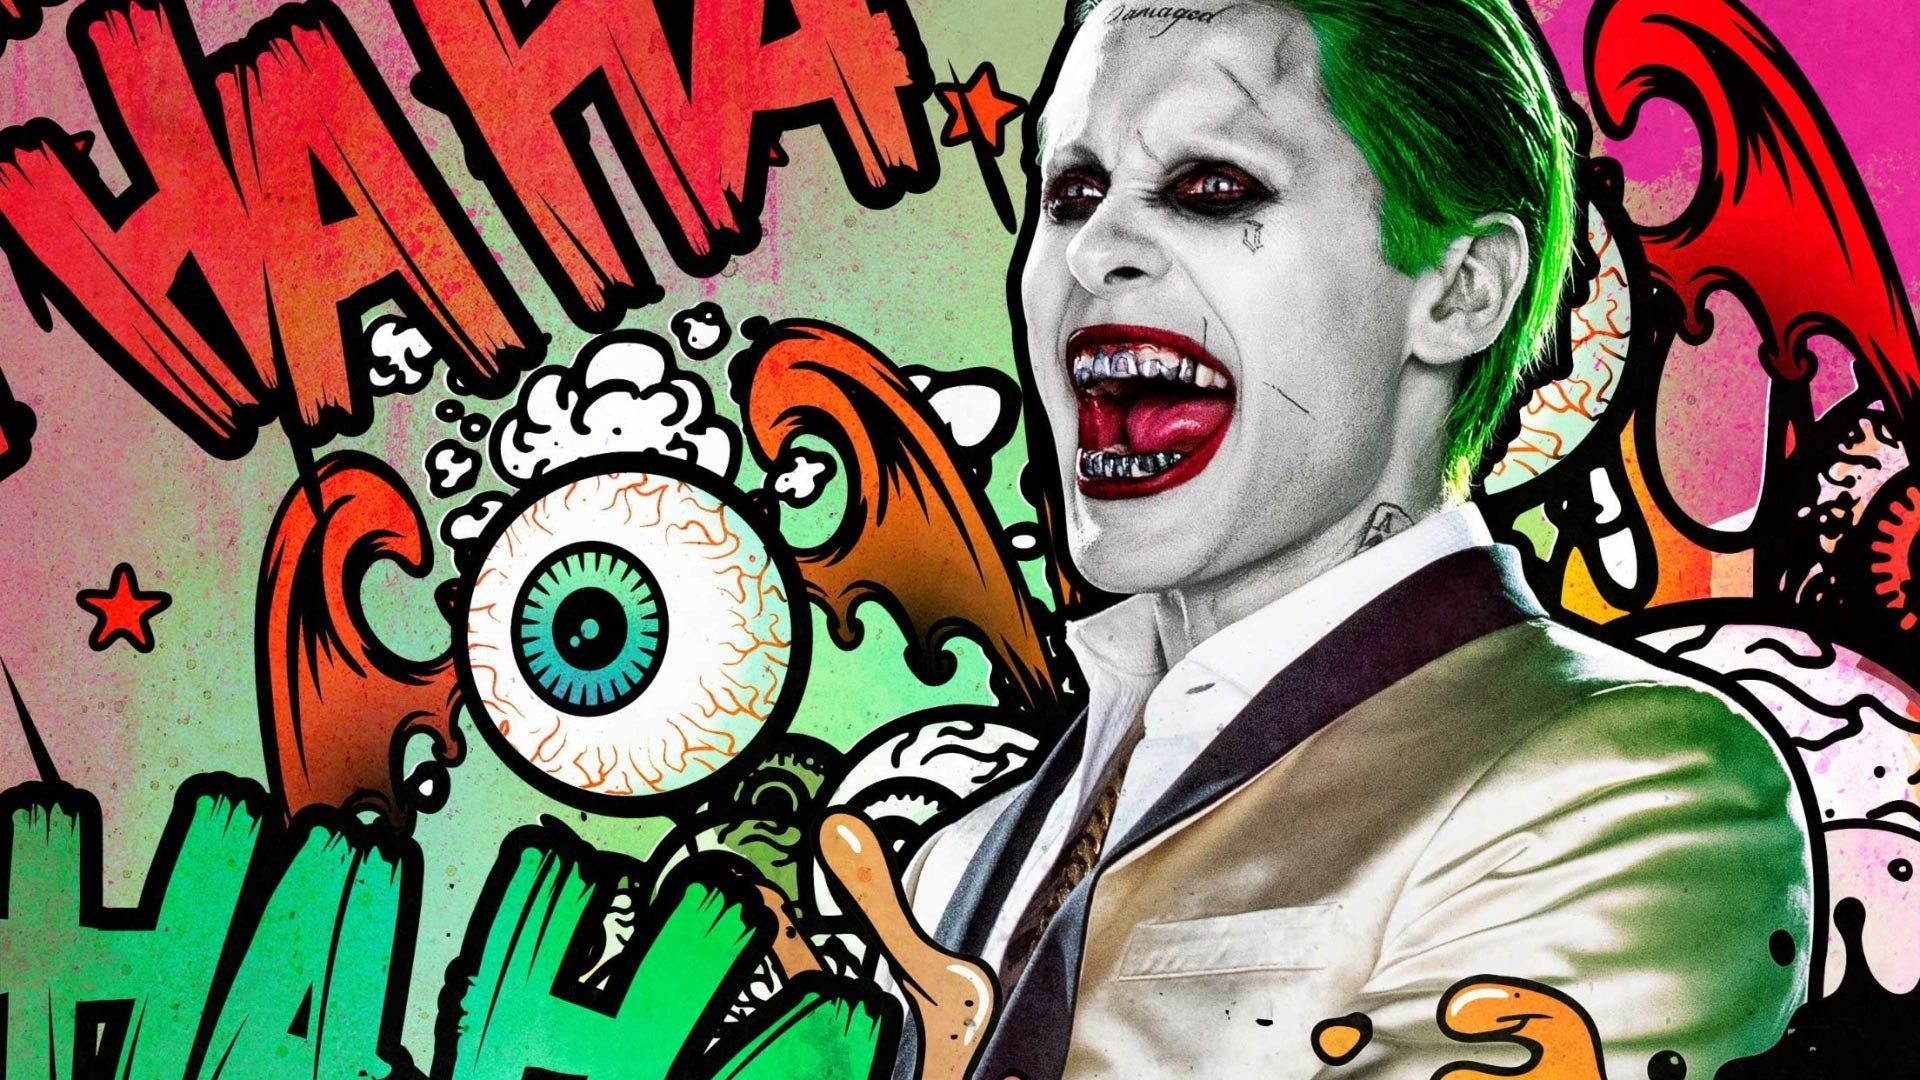 Katana and Joker using their signature powers, weapons and skills.  Decorated Your Resolution: 1024×1024 3840×2160 Wallpaper suicide squad, harley  quinn …